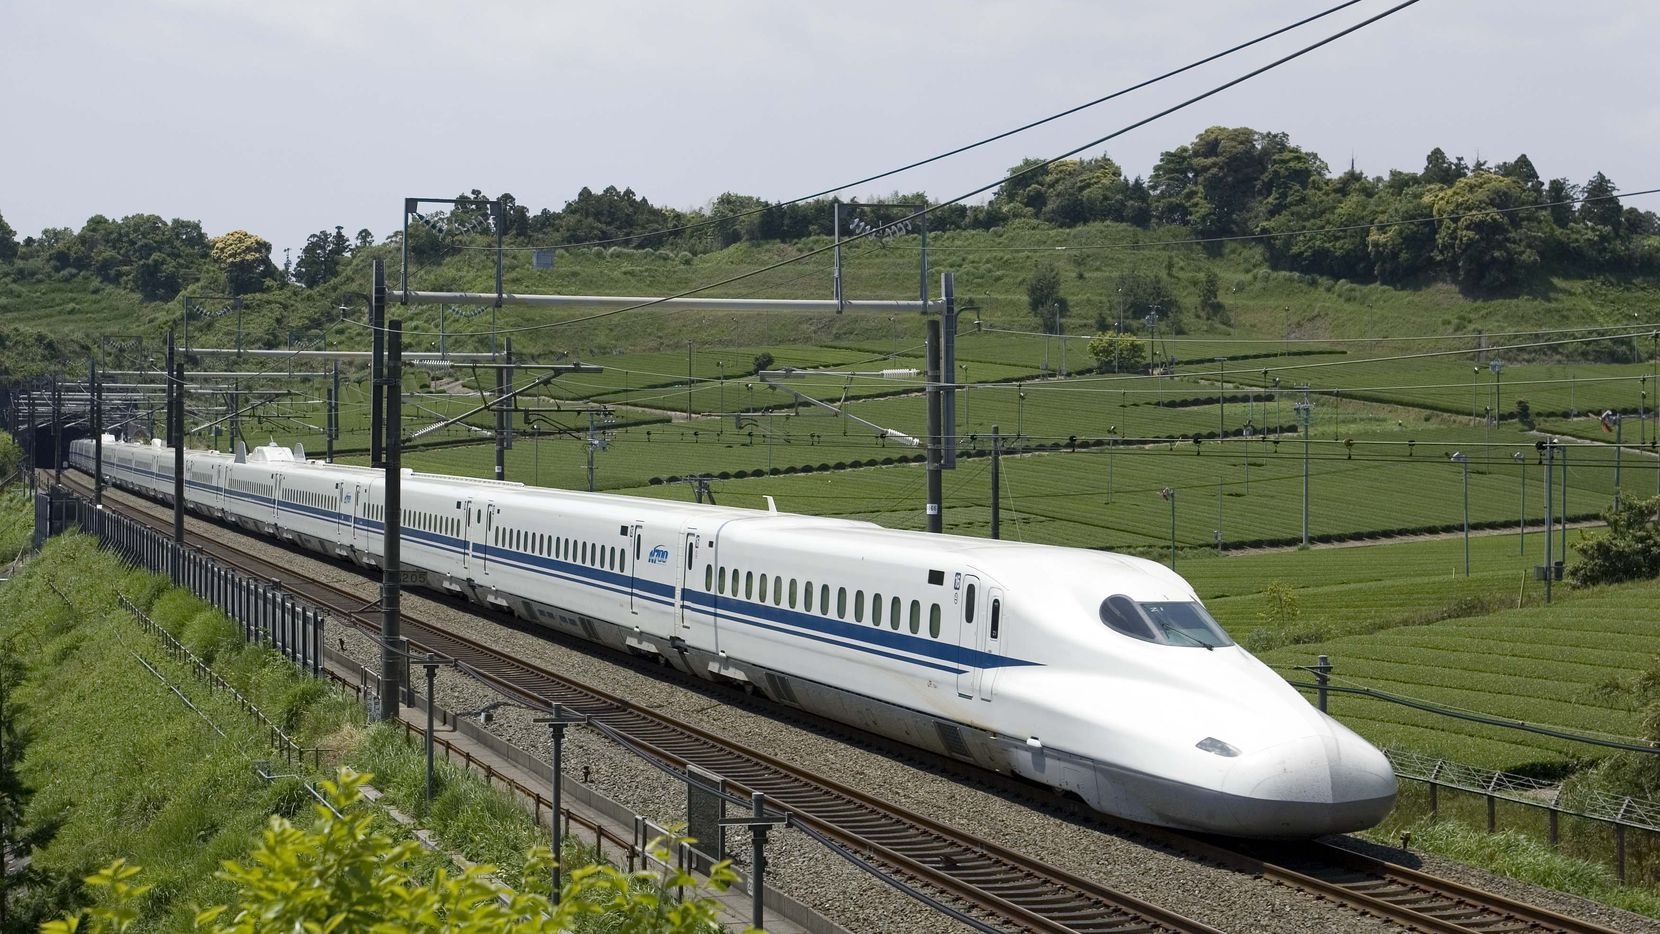 The high-speed train Texas Central proposes operating between Houston and Dallas would be similar to this N700 bullet train that runs from Tokyo to Osaka.   Note: attribution needs this language:  Photos of the N700 used under permission of JR Central .